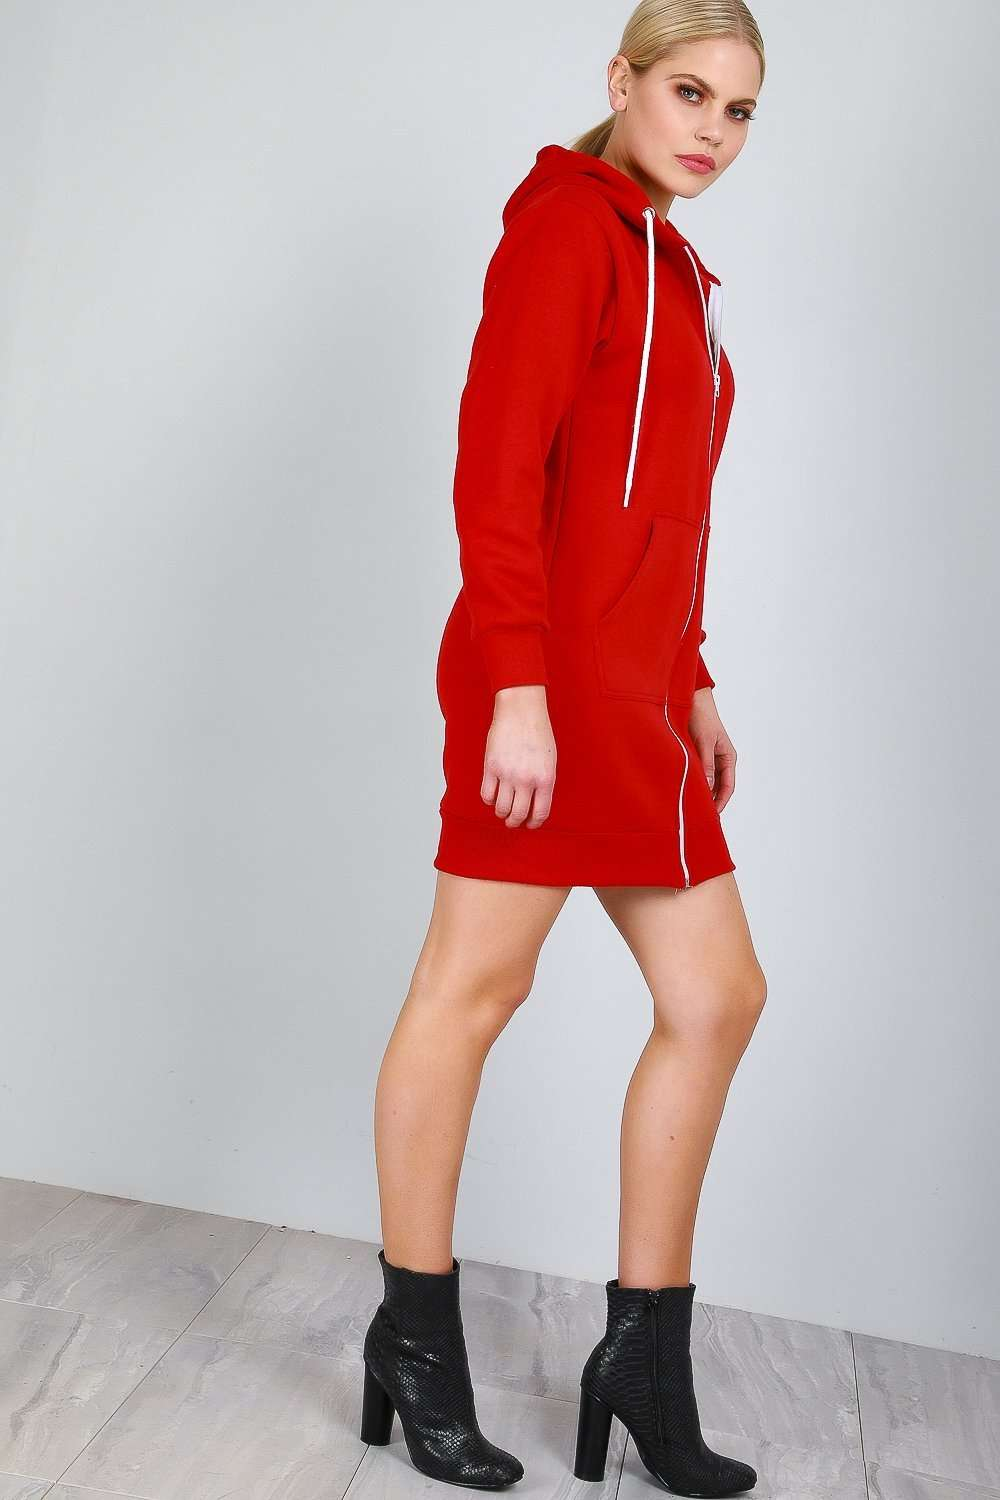 Vee Oversized Hooded Sweatshirt Mini Dress - bejealous-com